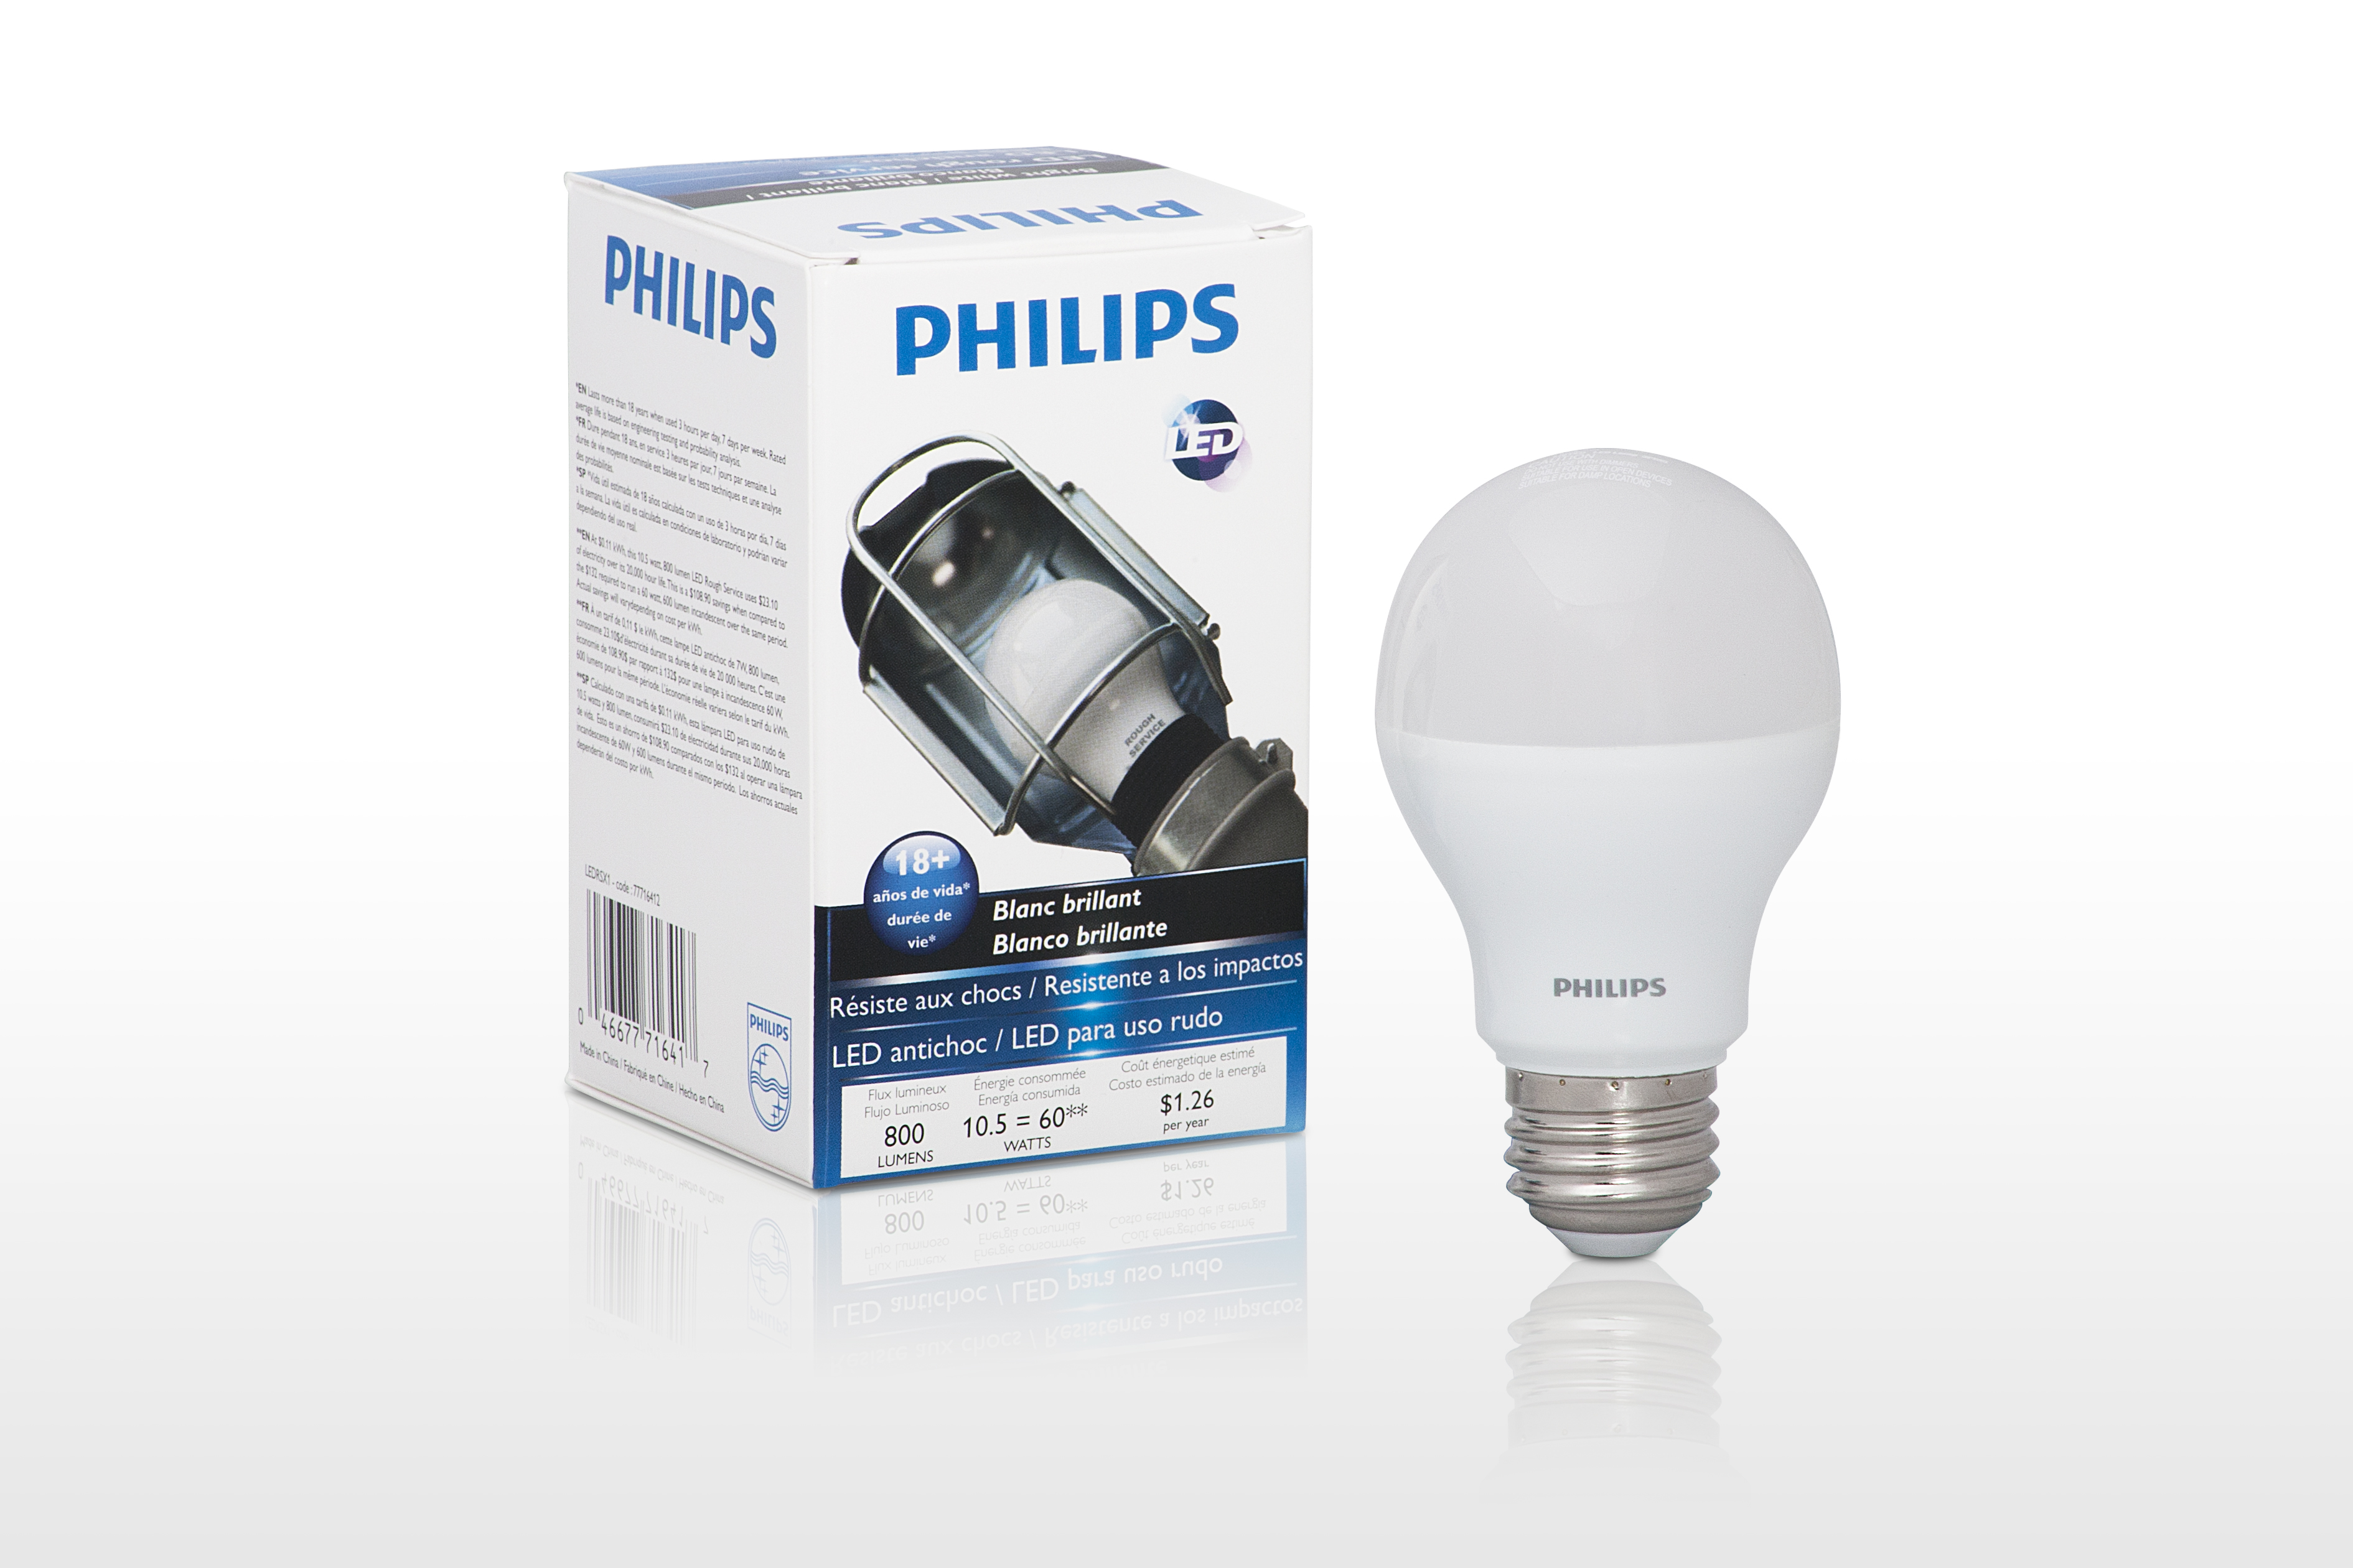 Philips LED Rough Service Light Bulb for rugged shop use